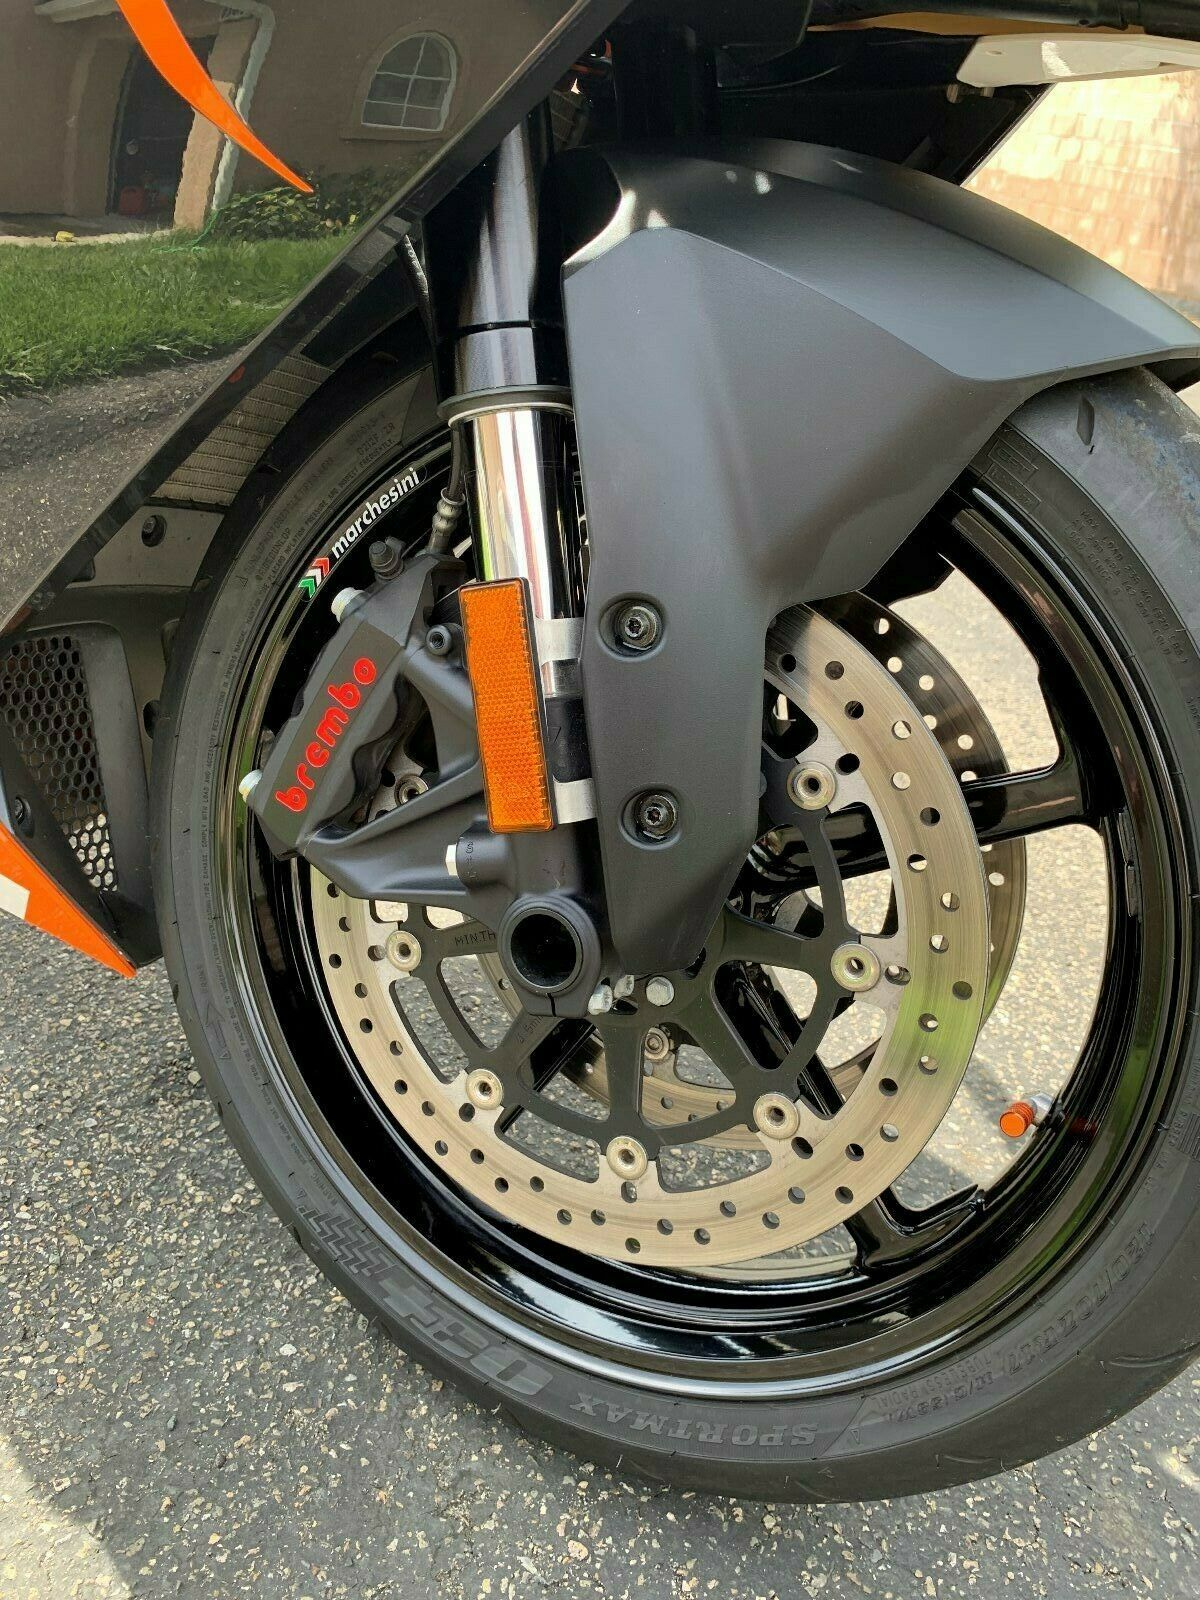 hight resolution of i am the original owner of this 2014 ktm rc8r 1190 i purchased the bike in march of 2014 from thousand oaks the bike runs perfect and looks beautiful